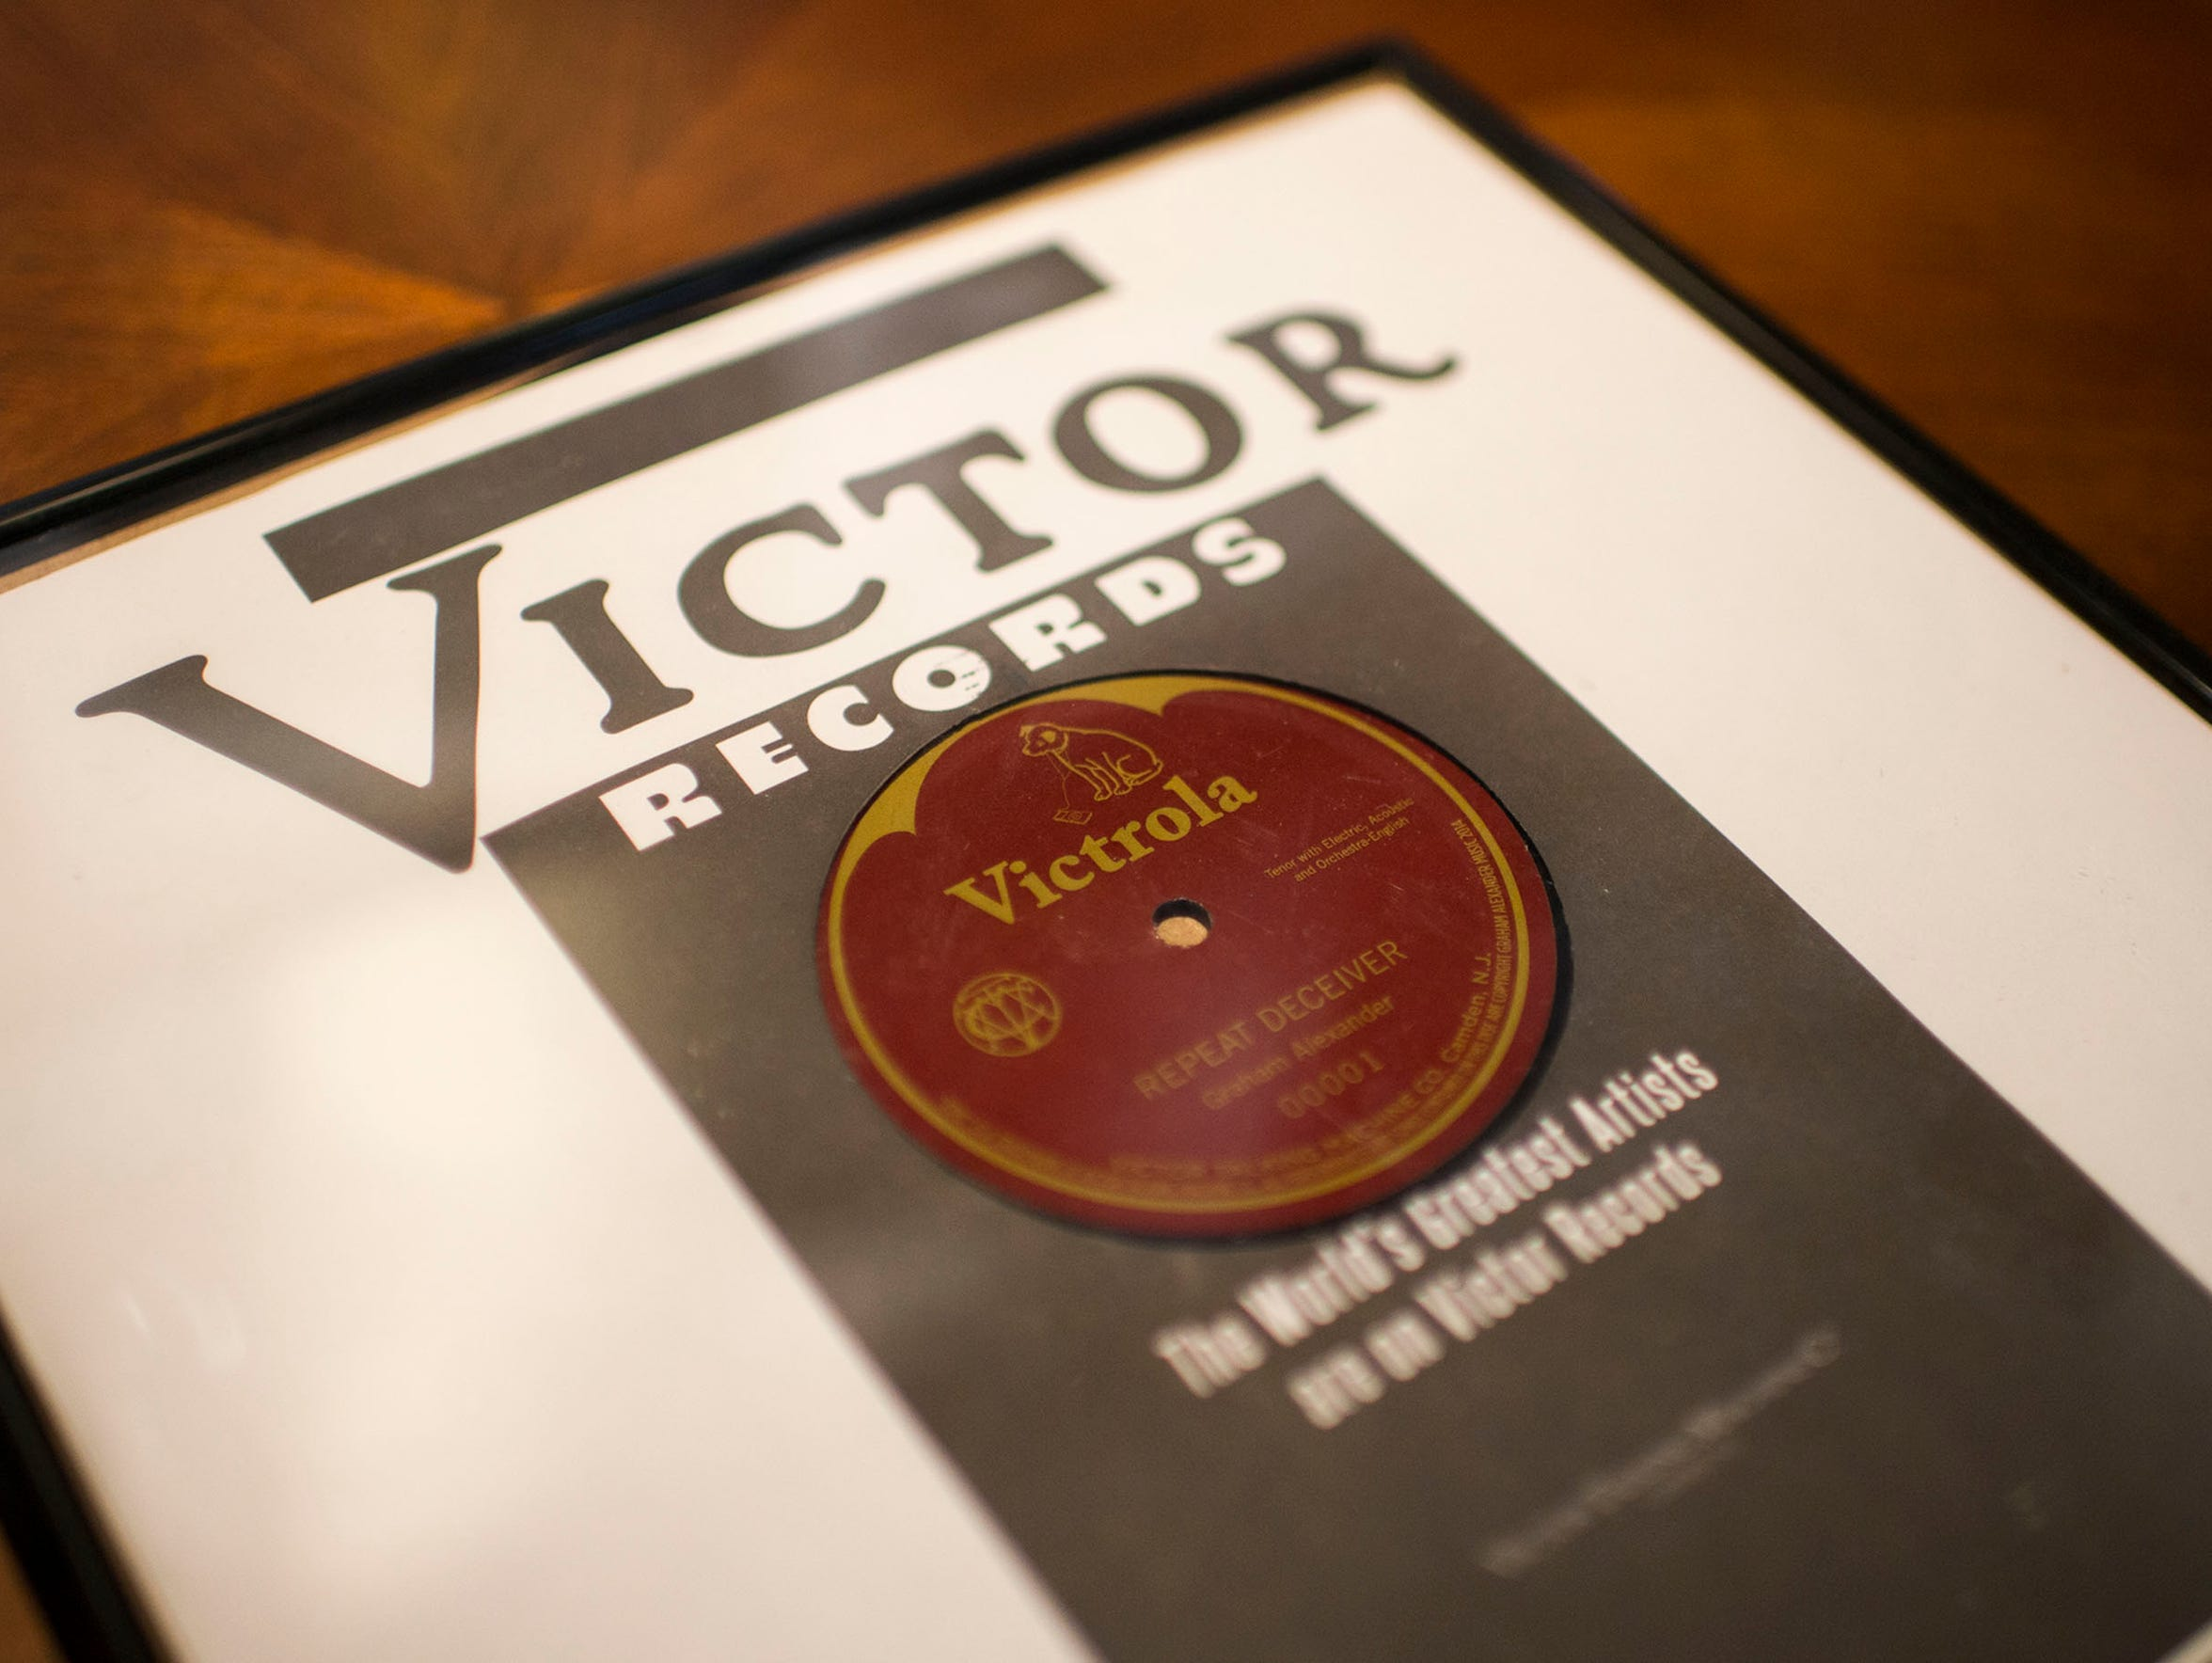 Victrola Records is releasing new music for the first